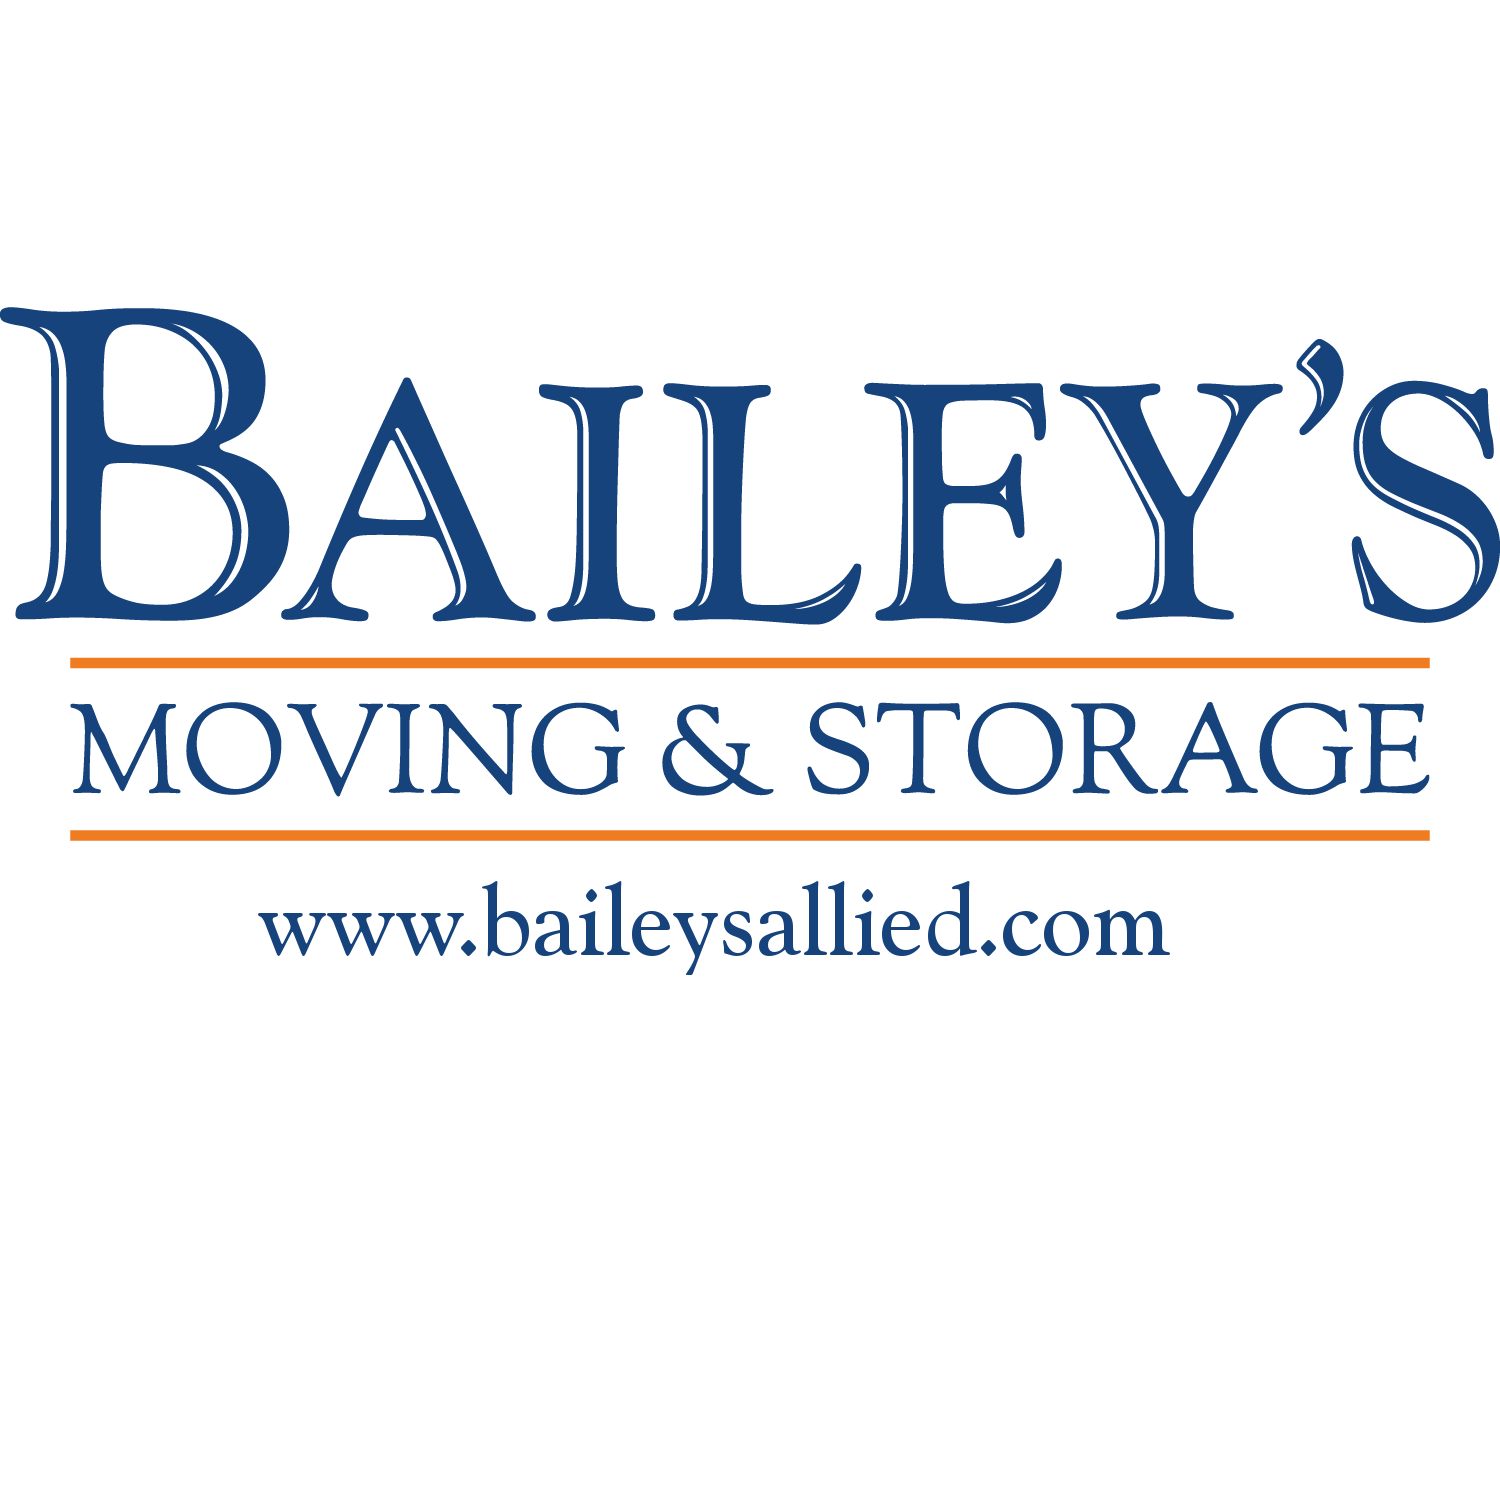 Bailey's Moving & Storage